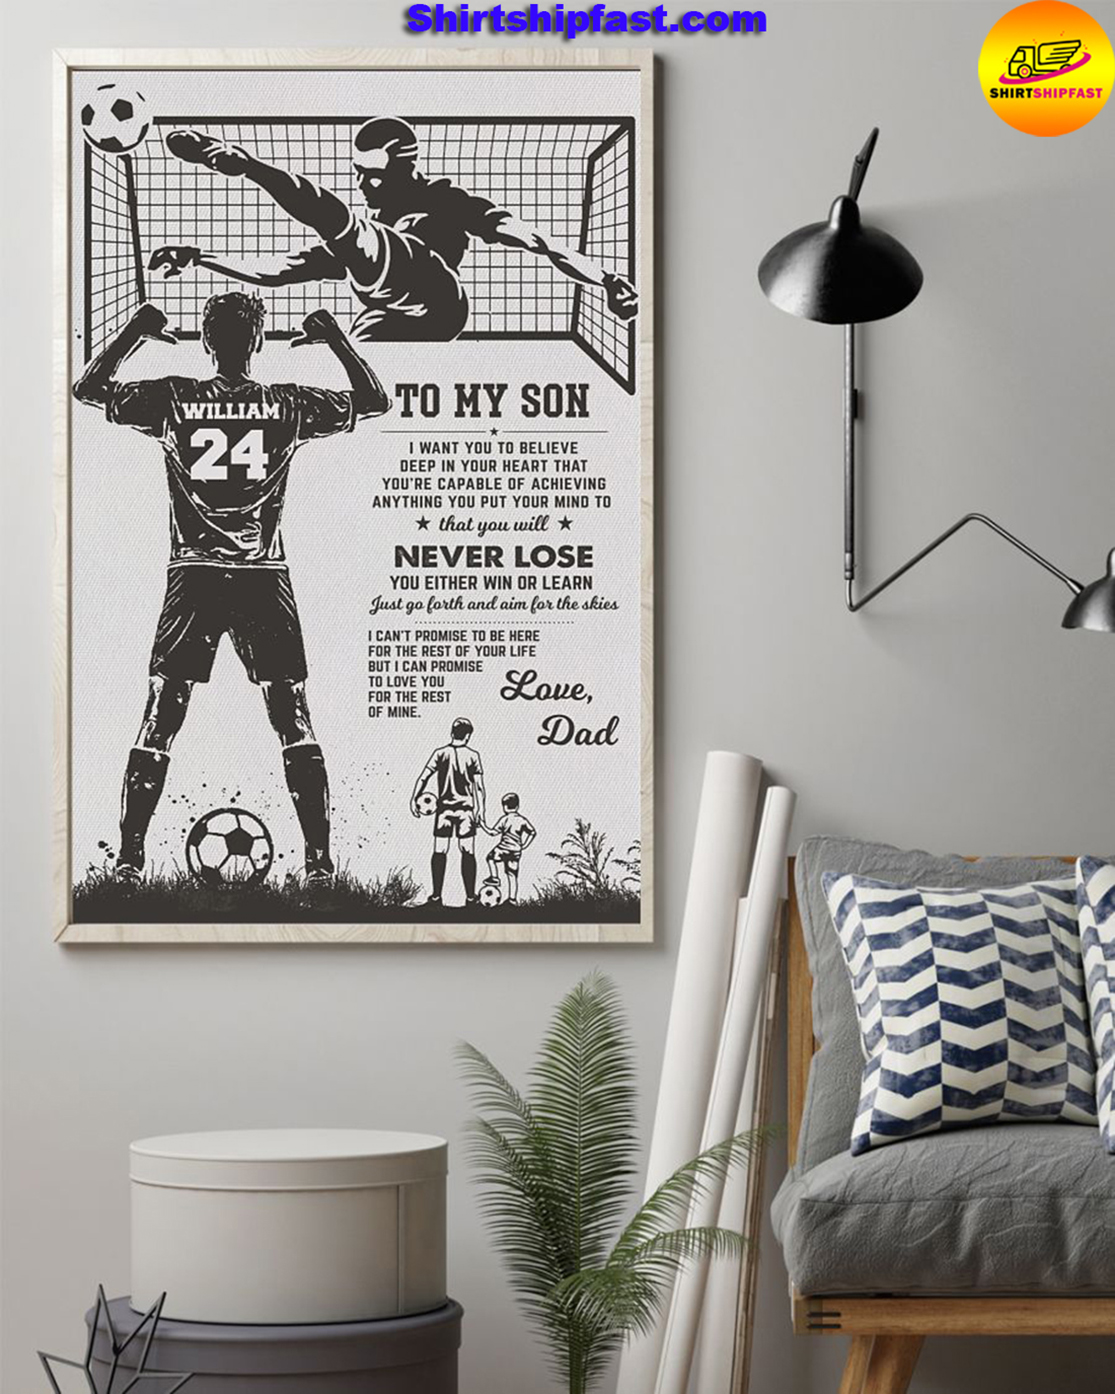 Personalized Soccer Dad To my son poster - Picture 3